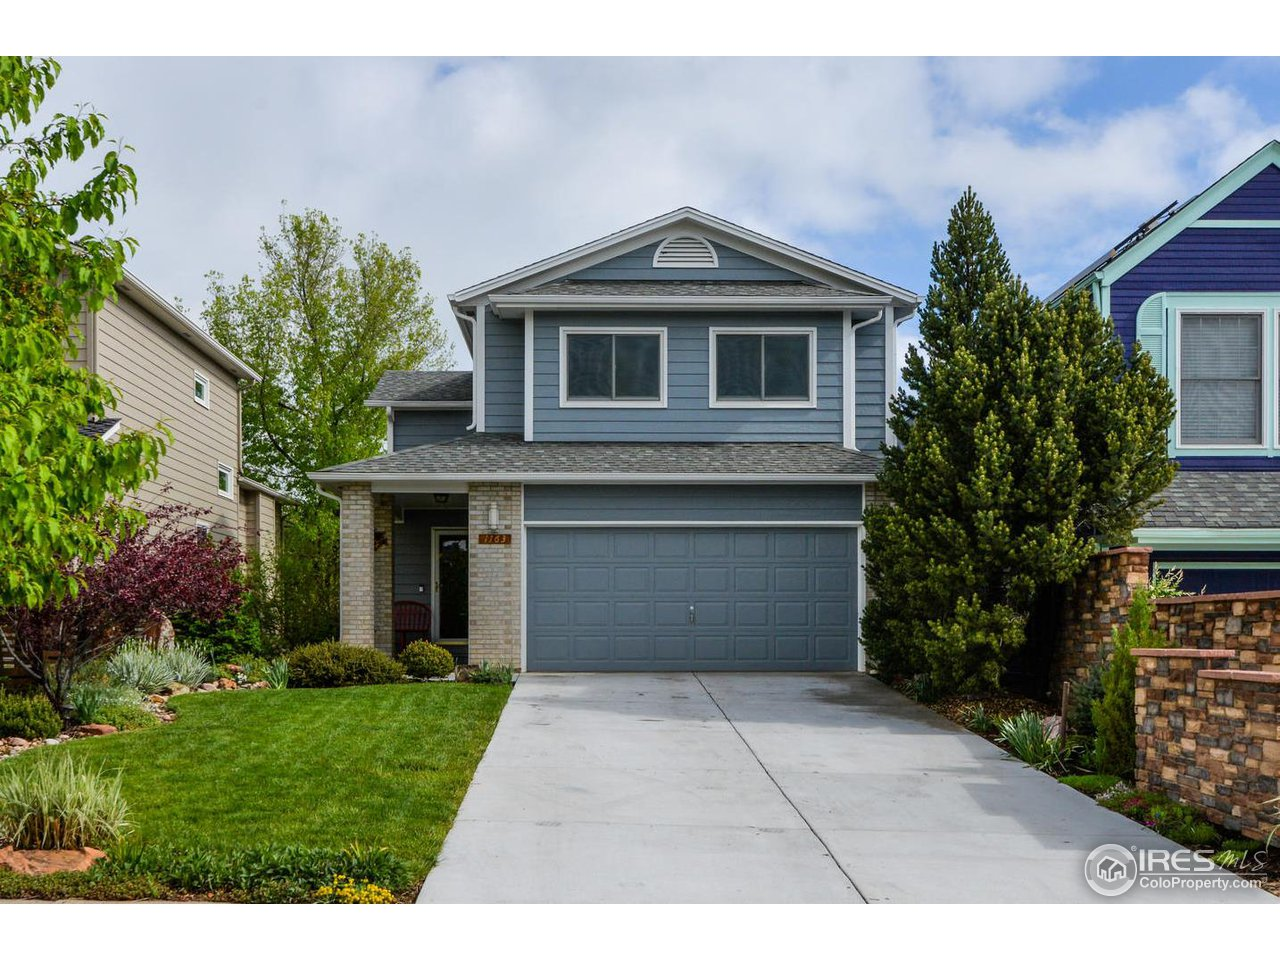 1163 Quince Ave, Boulder CO 80304